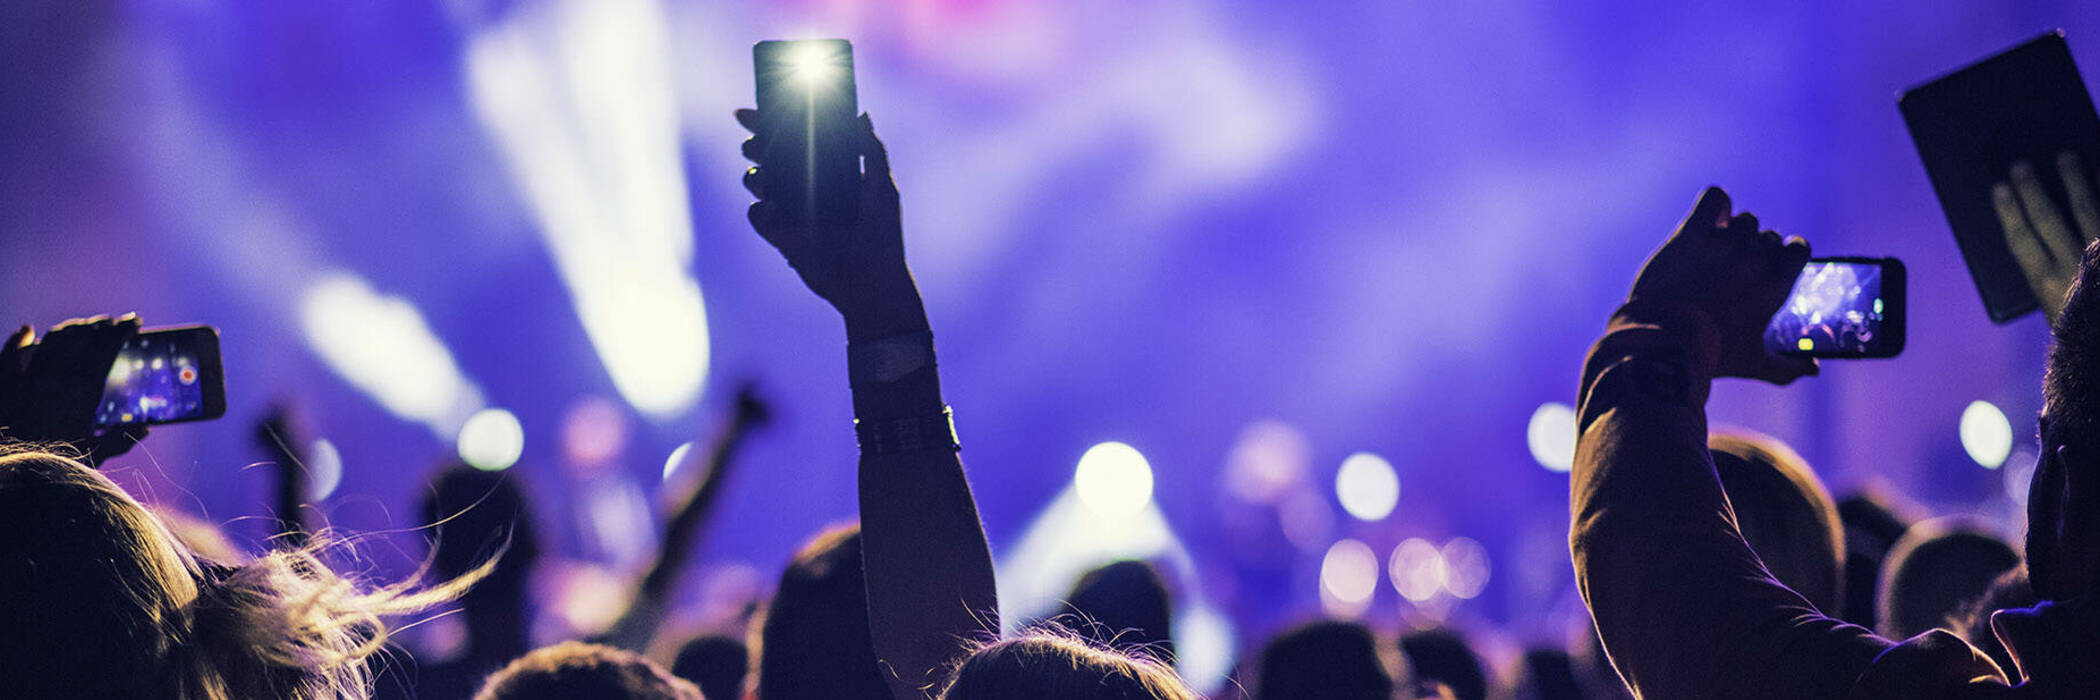 people recording a concert